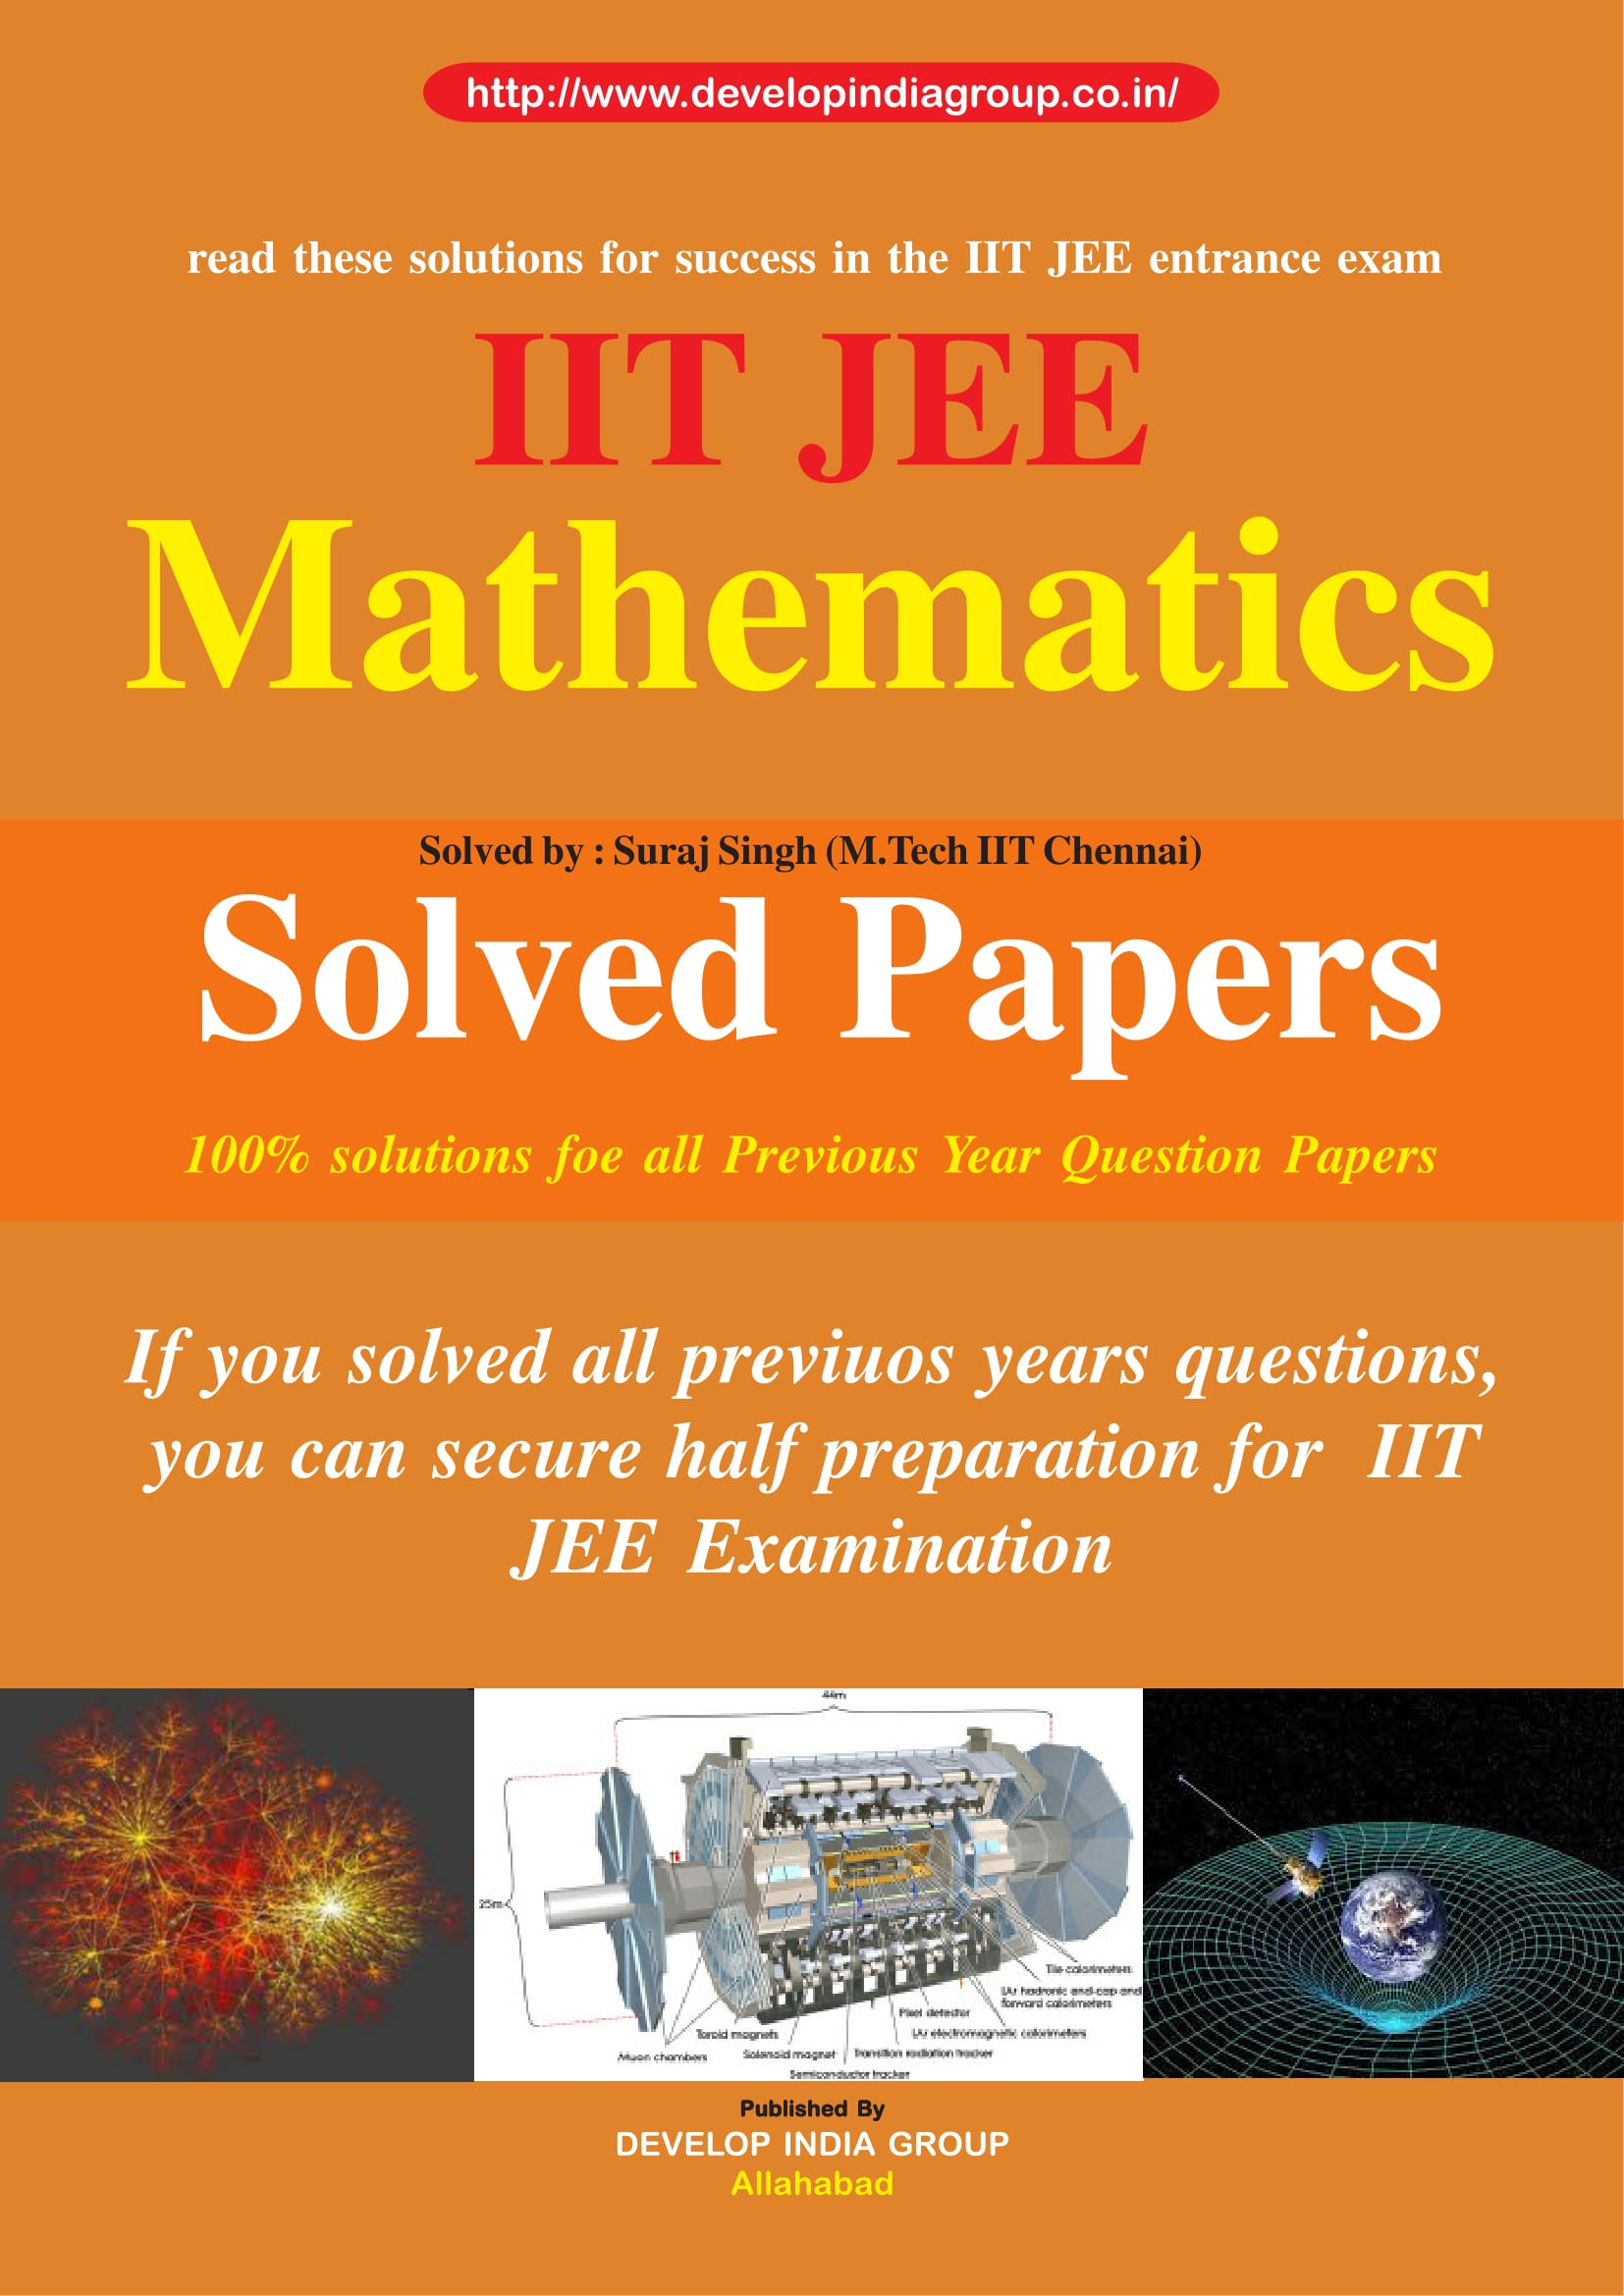 IIT_JEE_solved_paper_for_Mathematics